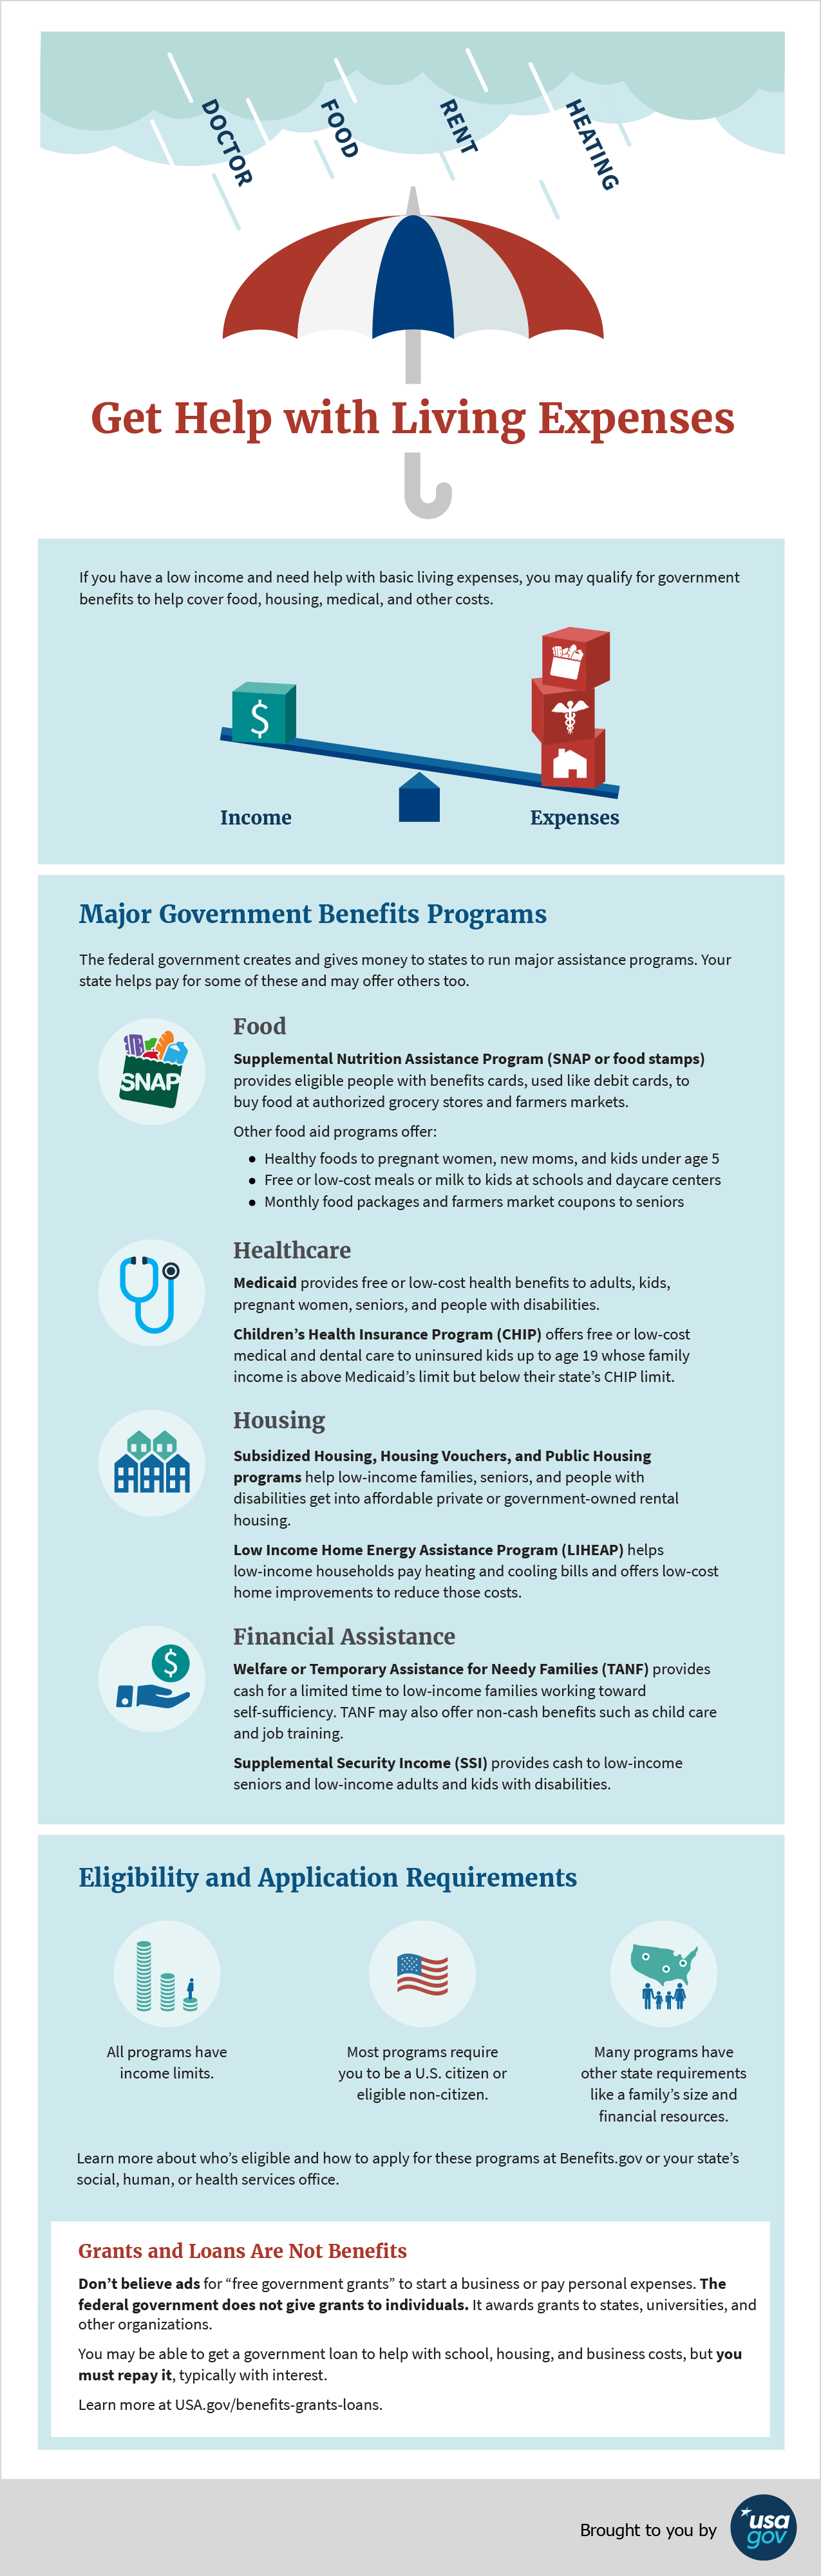 Government Free Money Benefits